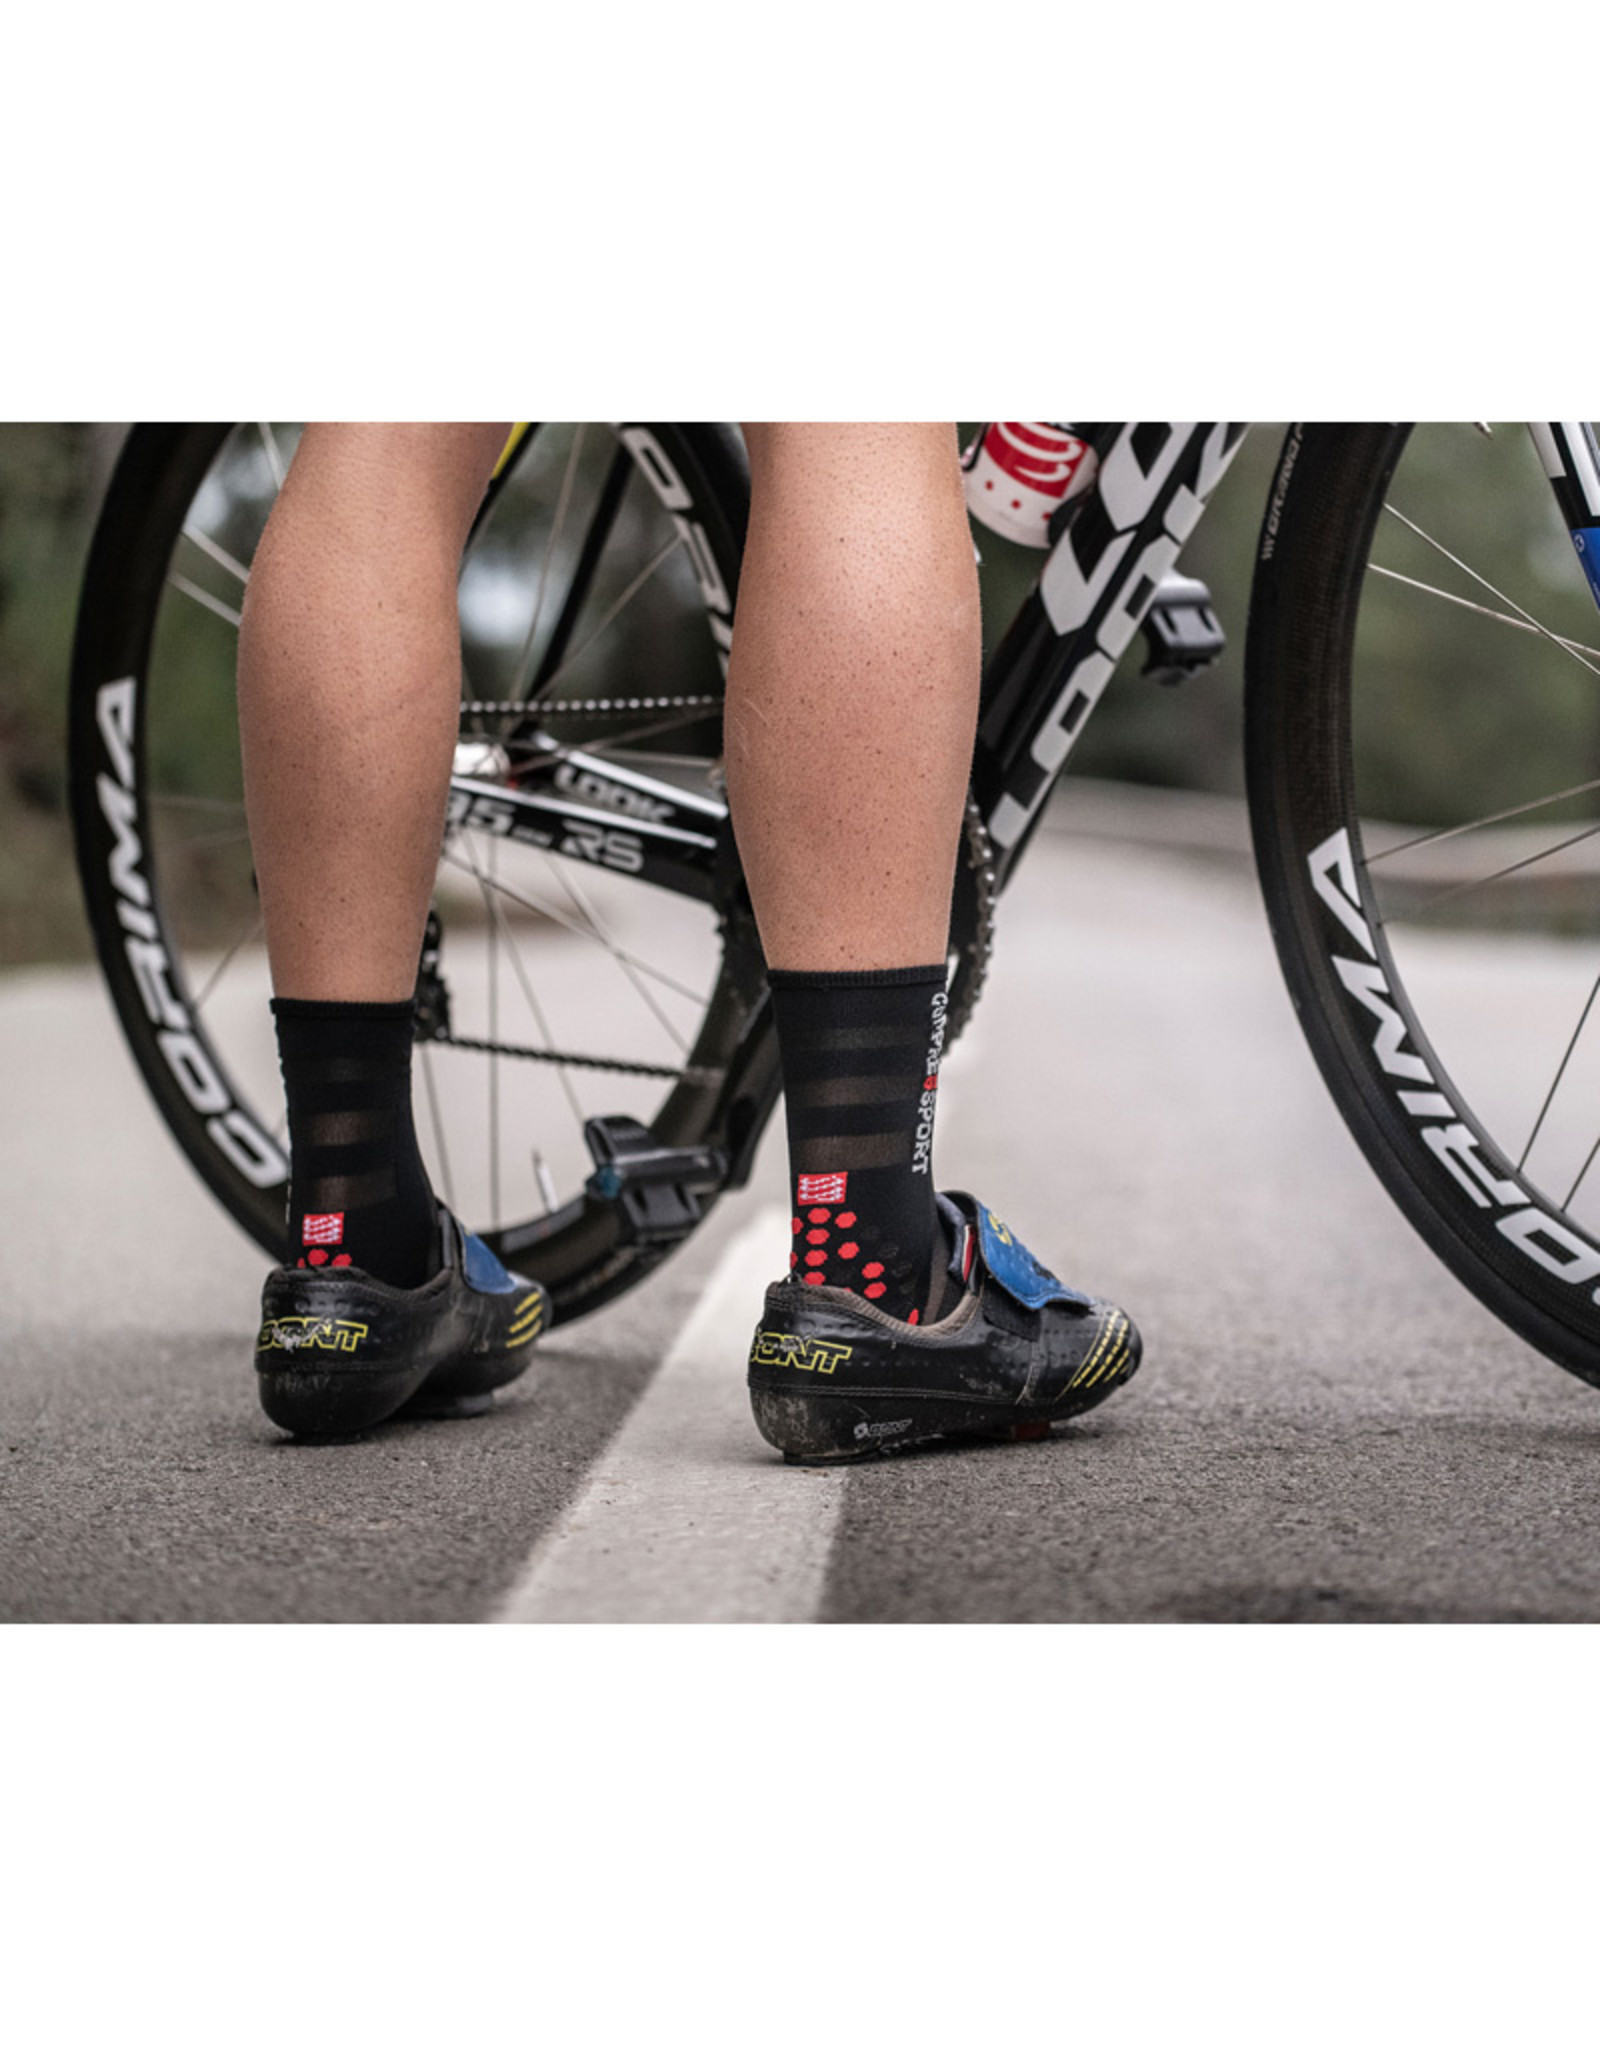 Compressport Pro Racing Socks V3.0 Ultralight Bike Chaussettes Bicyclette - Noir/Rouge